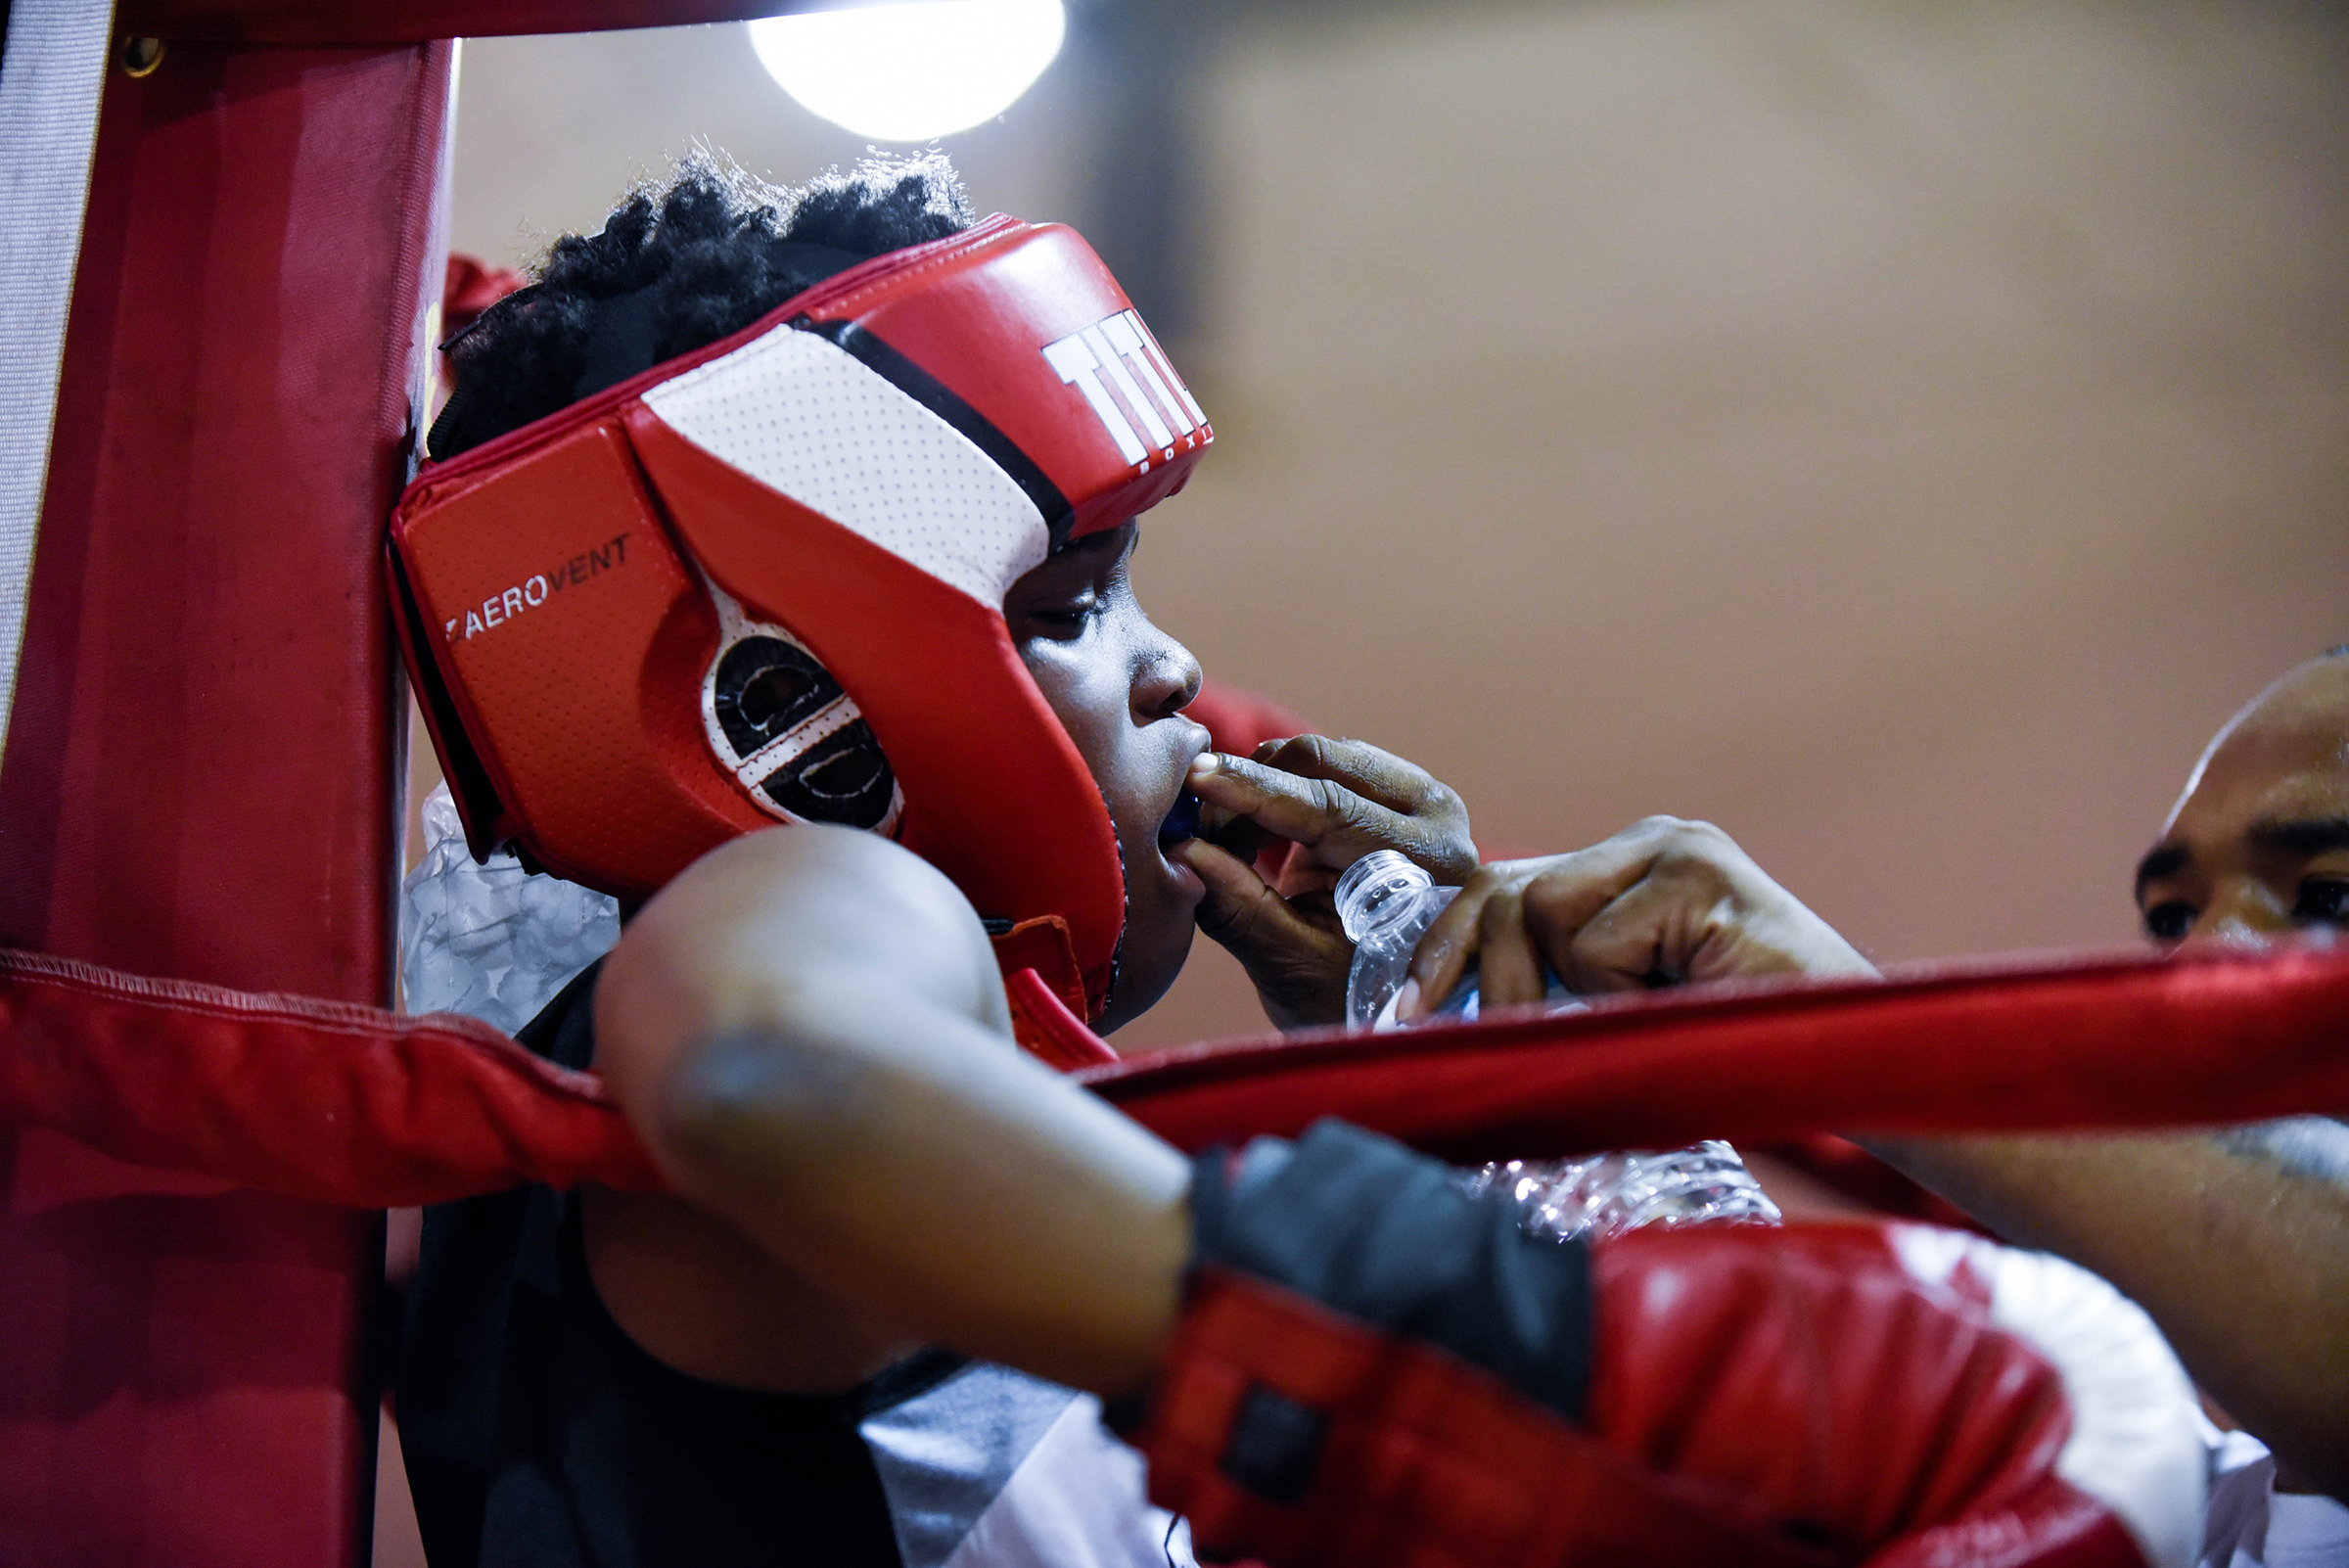 A young boxer from Athletic Recreation Center rests between rounds at the Lucien Blackwell Boxing Showcase took place at Gustine Recreation Center on Friday, Oct. 5, 2018. Brianna Spause / Philadelphia Parks & Recreation